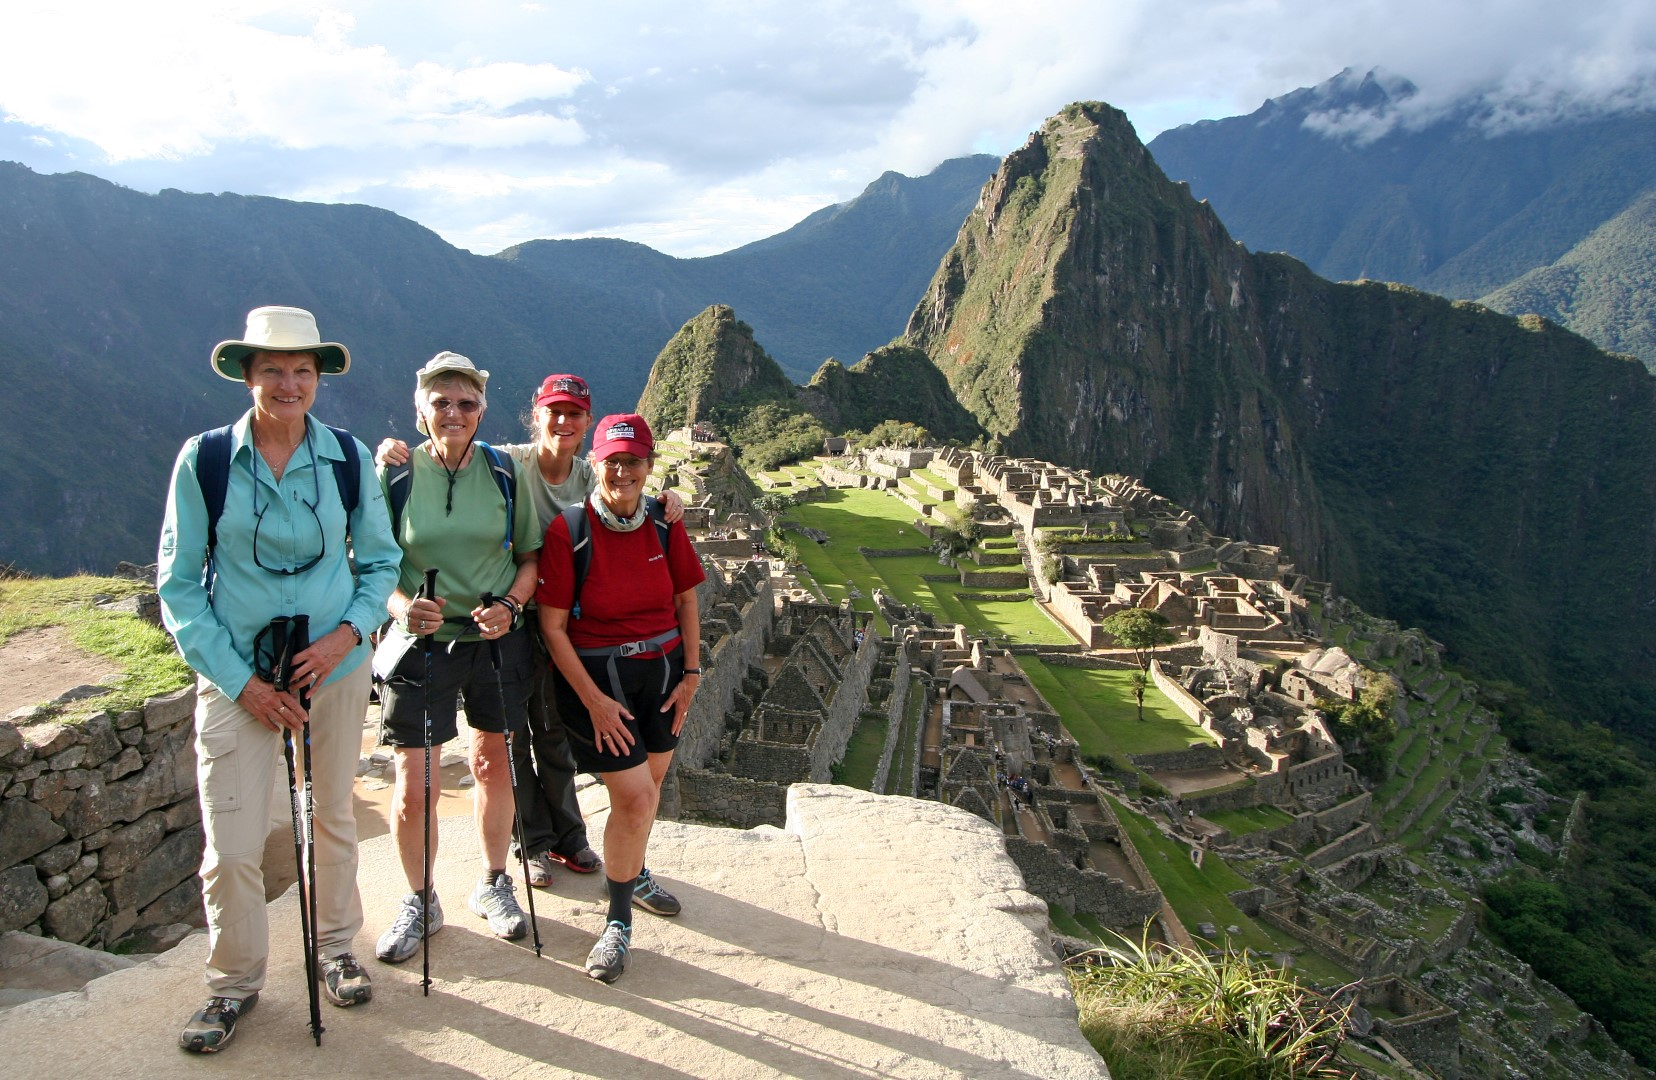 Hike or take a train to legendary Machu Picchu.